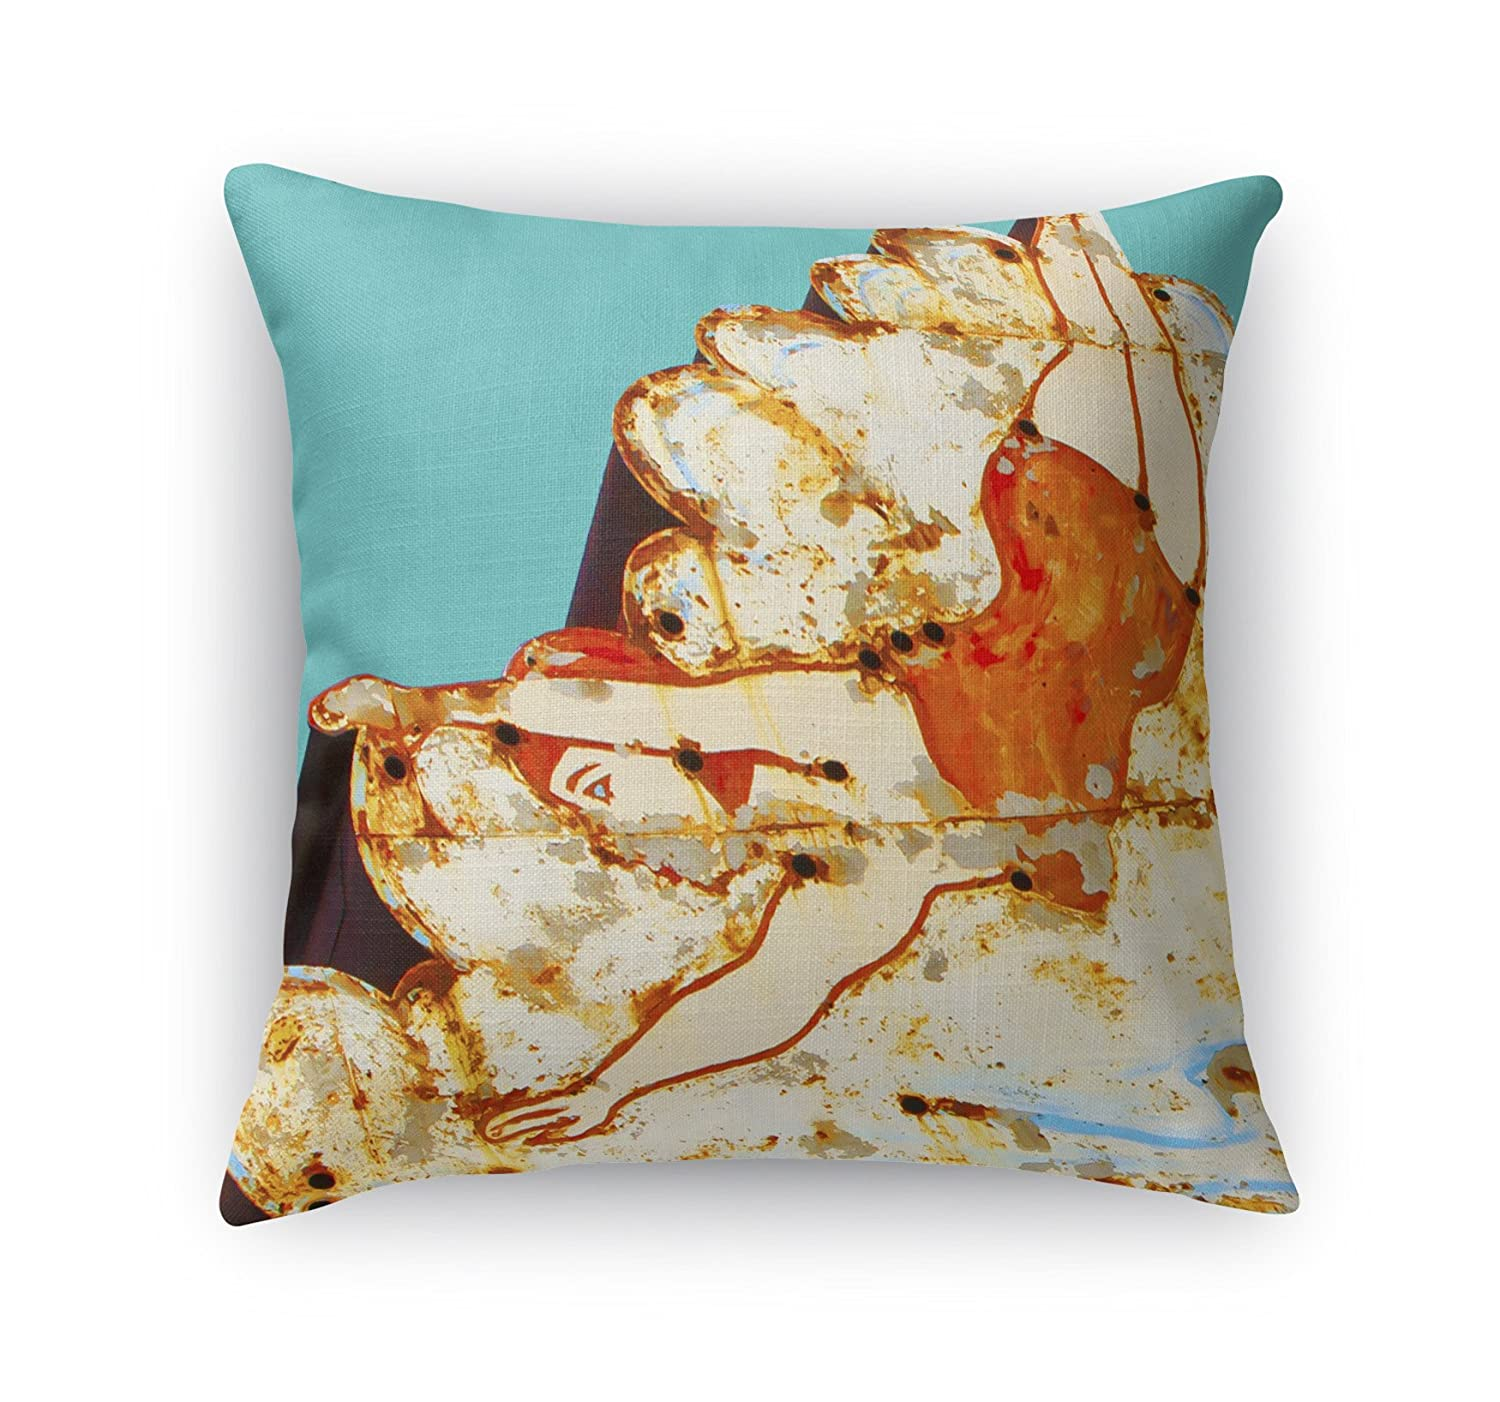 KAVKA Designs Take The Plunge Accent Pillow, (Orange/Ivory/Blue) - Heartland Collection, Size: 18X18X6 - (BOBAVC086DI18)